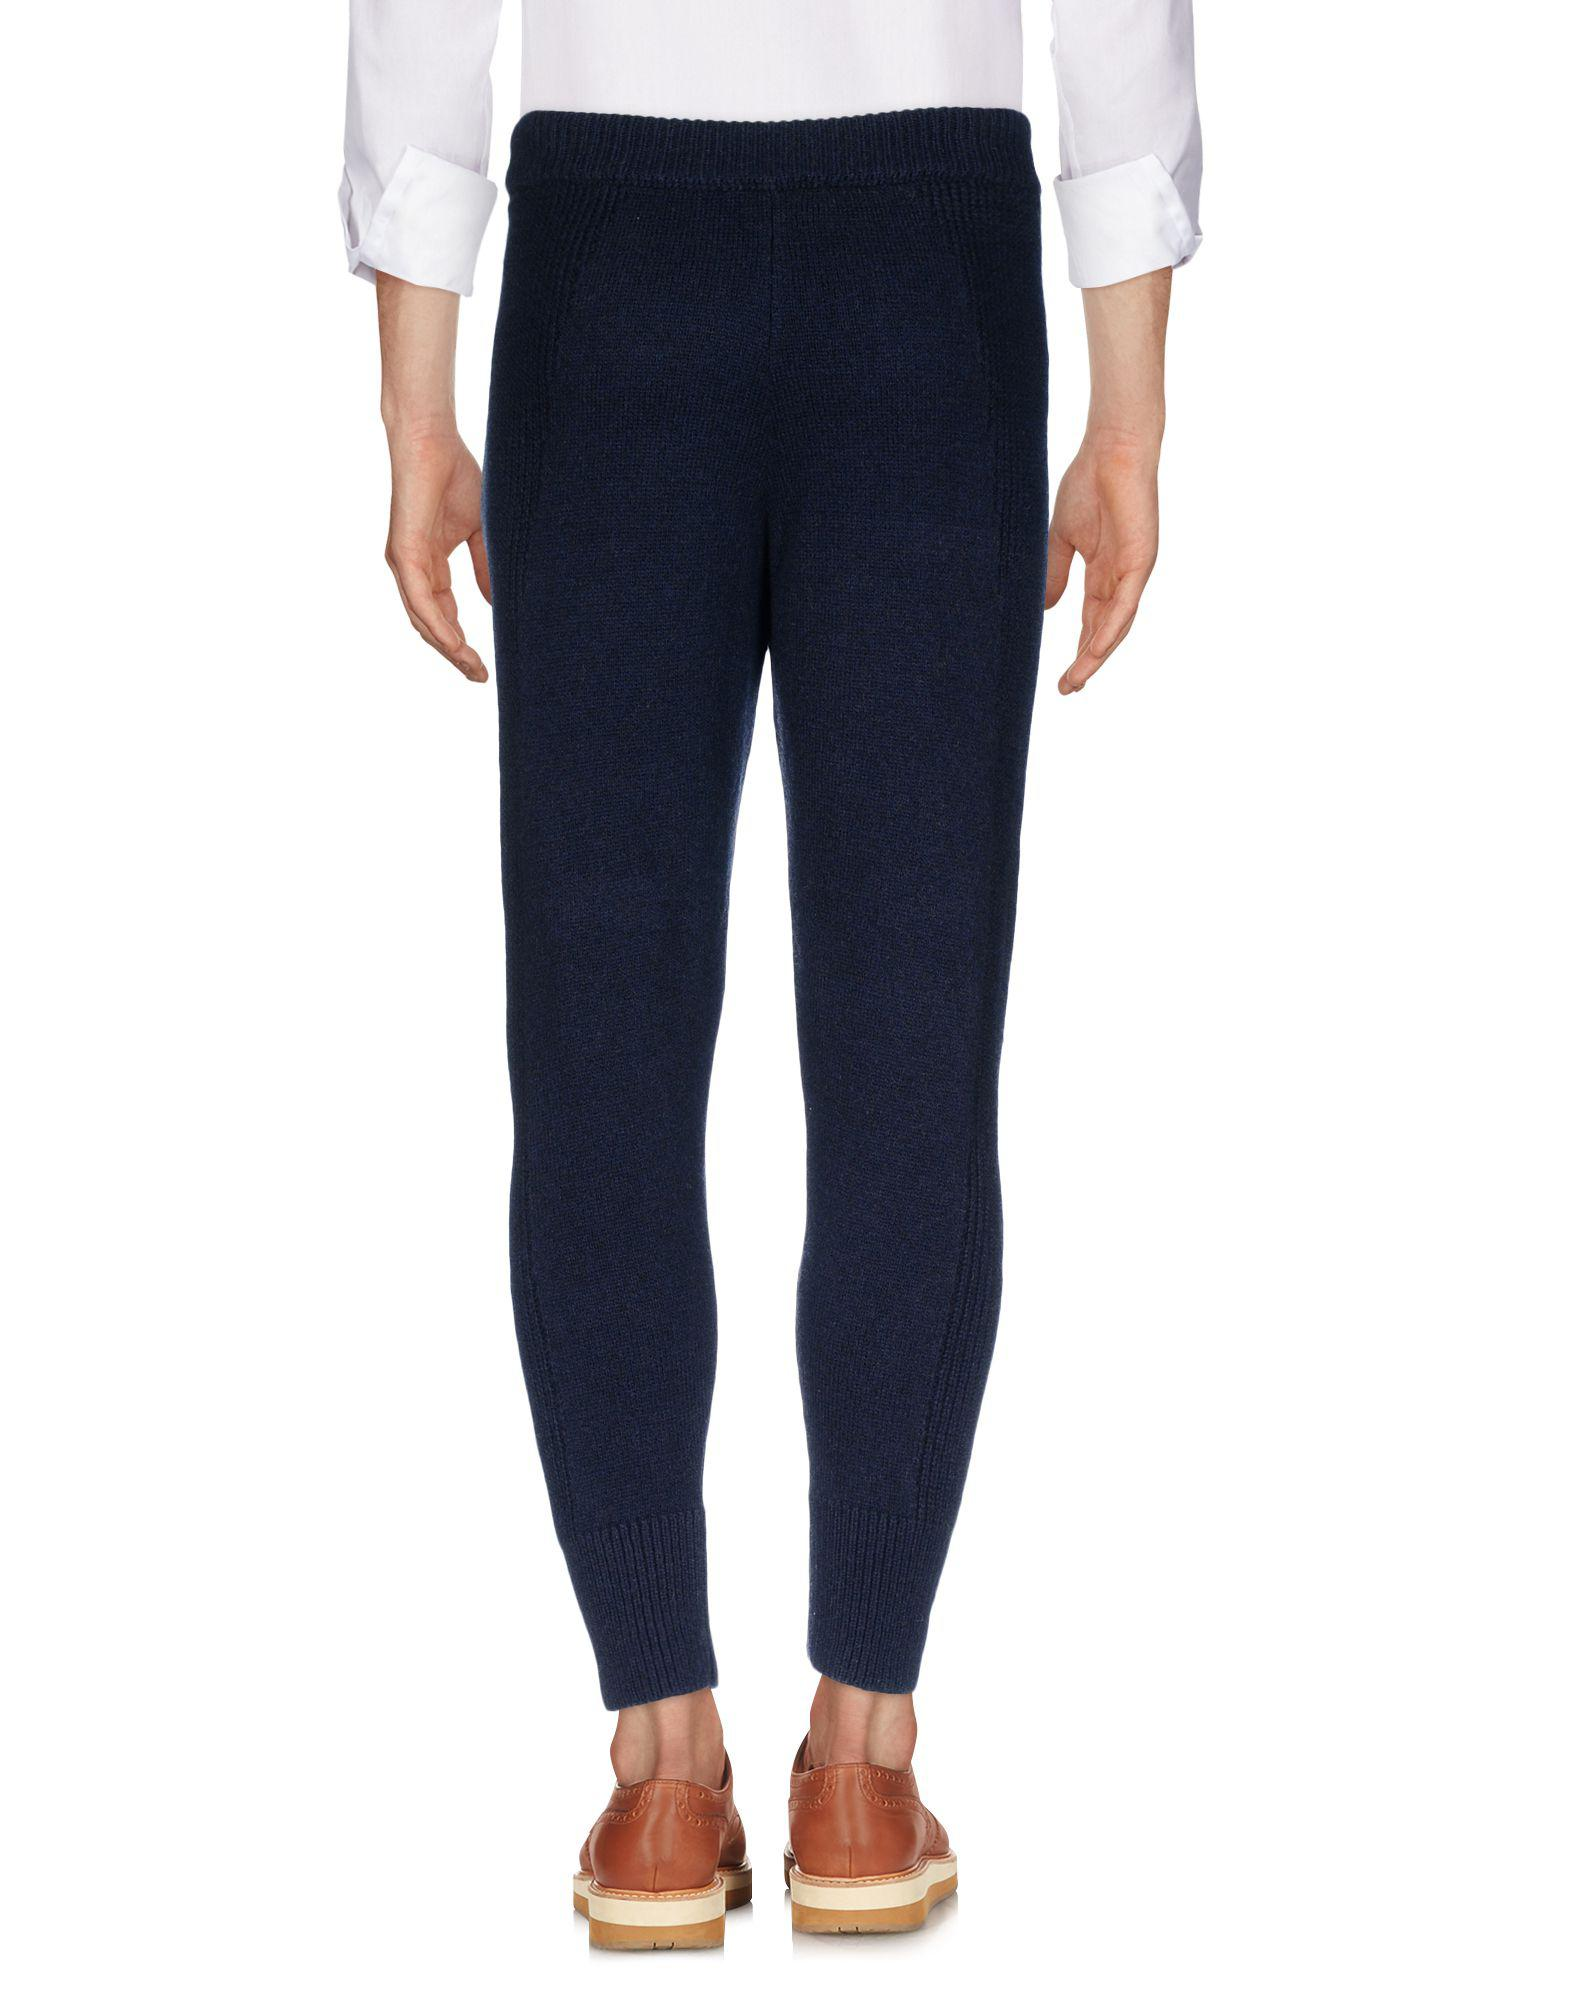 DSquared² Wool Casual Trouser in Dark Blue (Blue) for Men